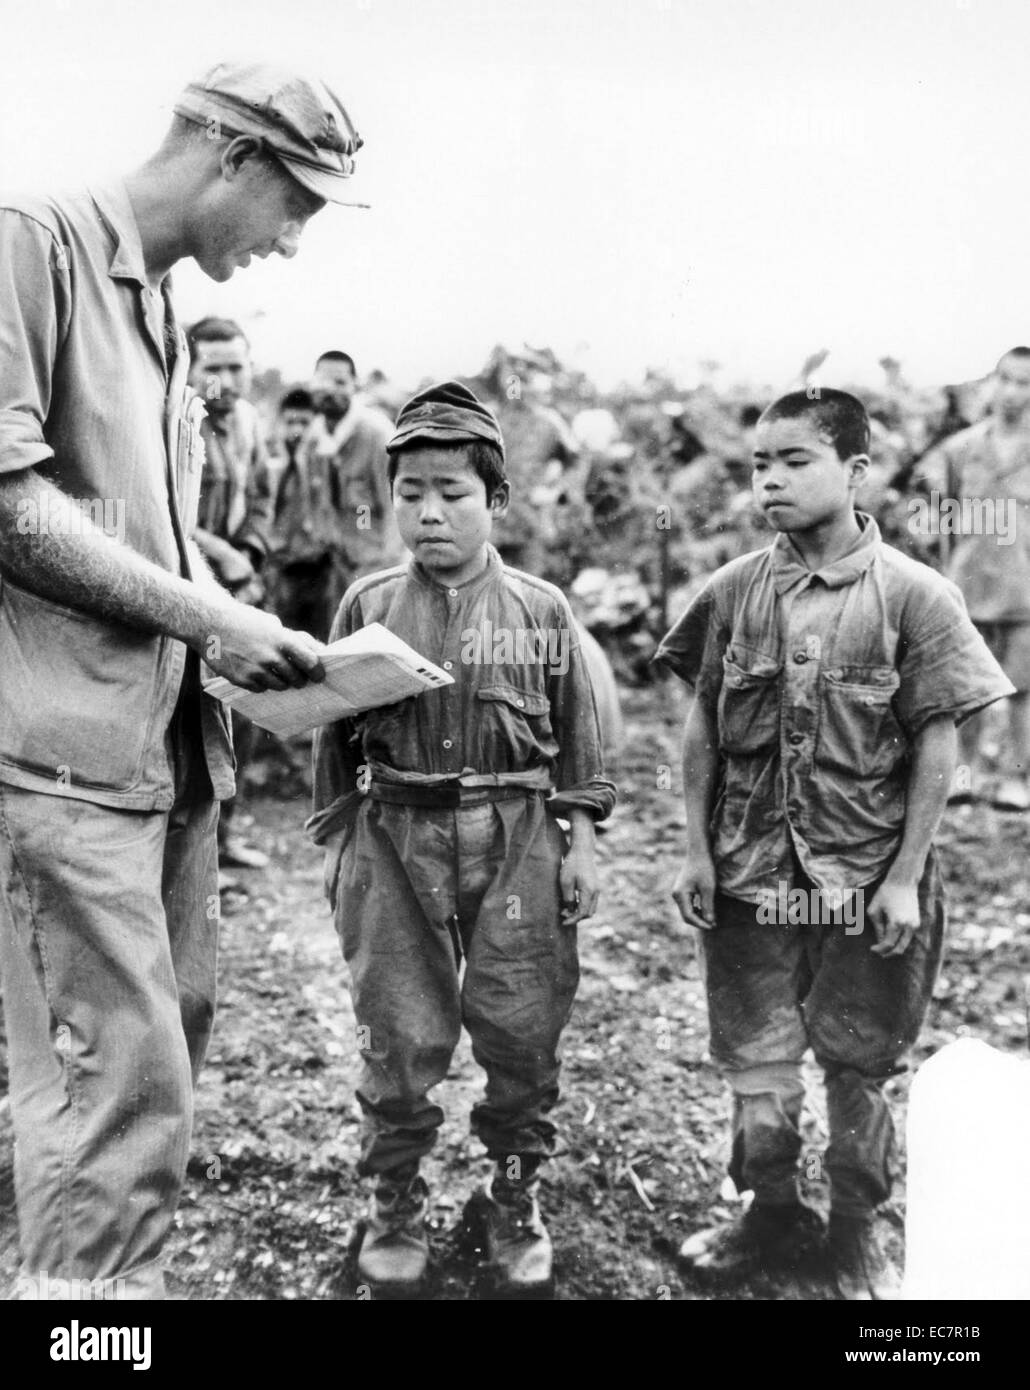 an analysis of a photograph of the american soldiers in world war two The pacific photos from wwii  with  two american soldiers of the  in the battle for the strategic japanese air field on cape gloucester during world war ii .